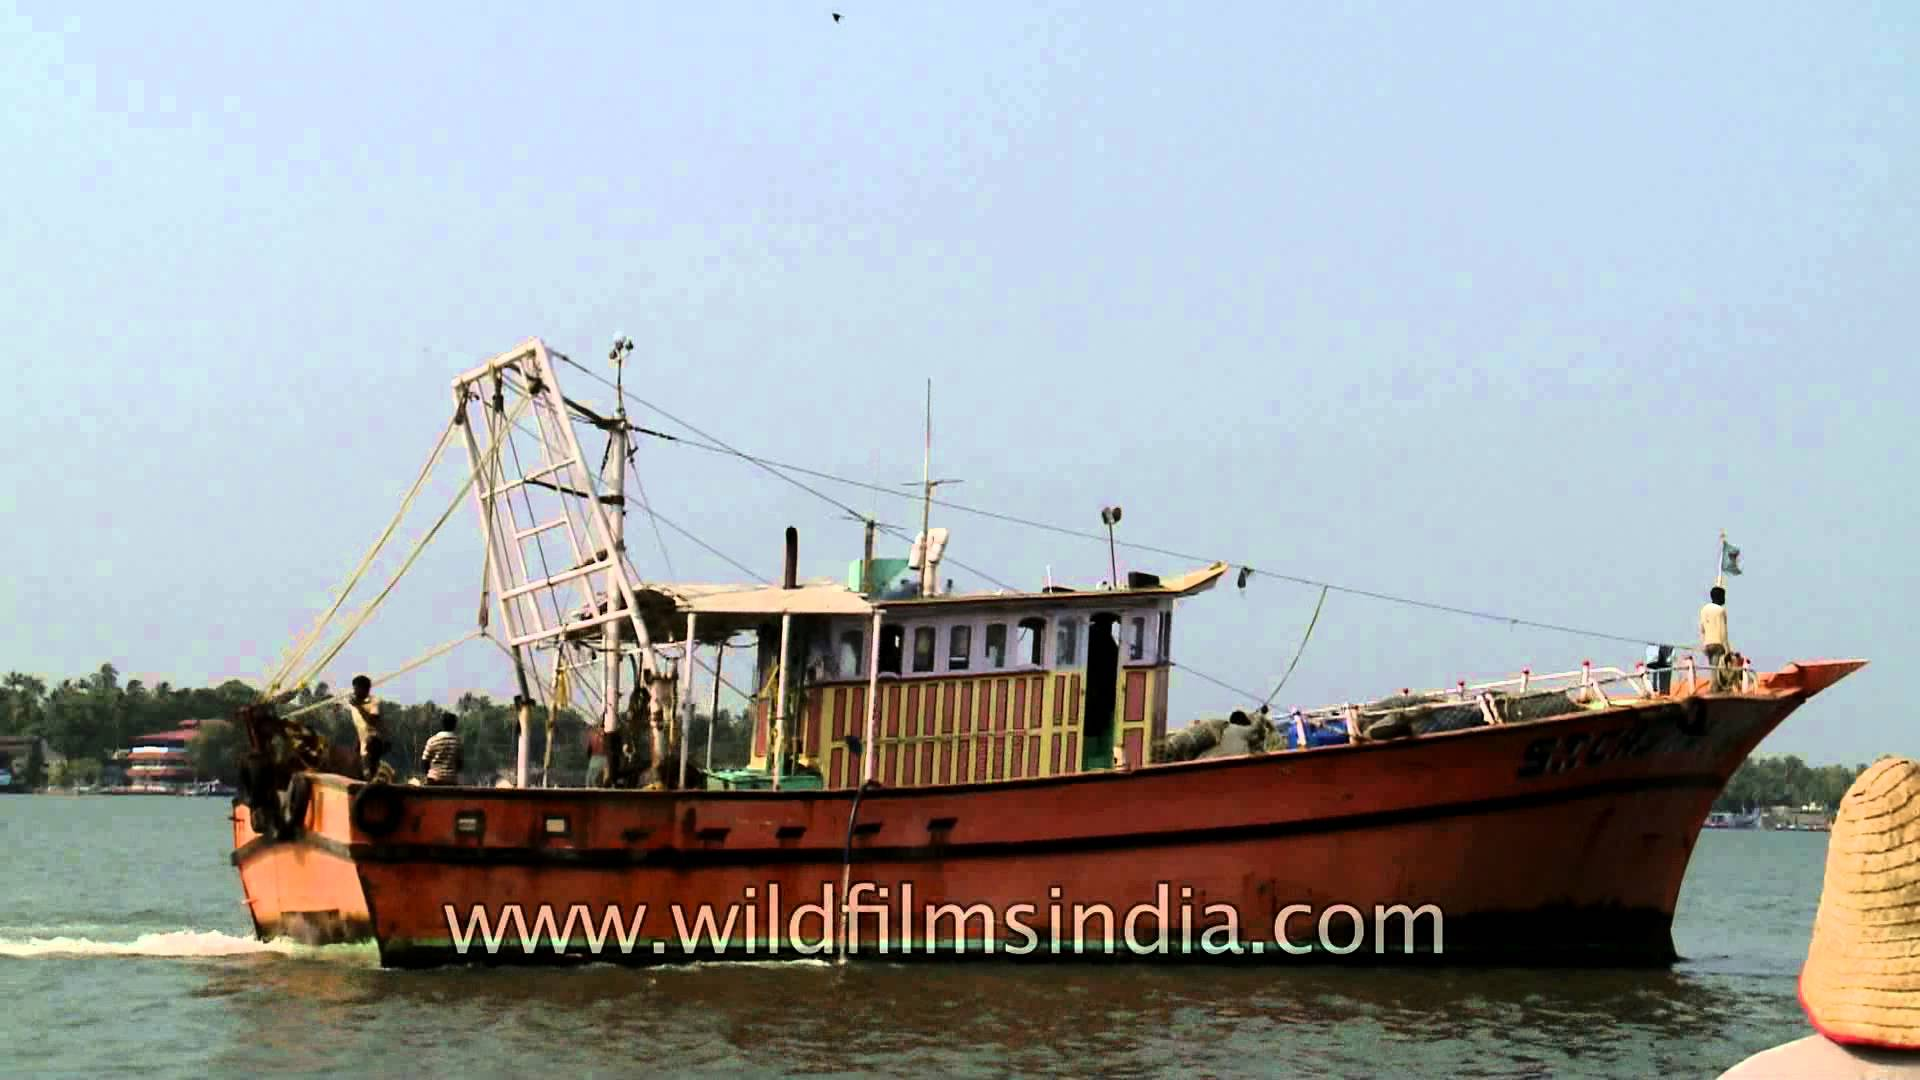 Fishing boats at Munambam harbour, Vypeen Island - YouTube